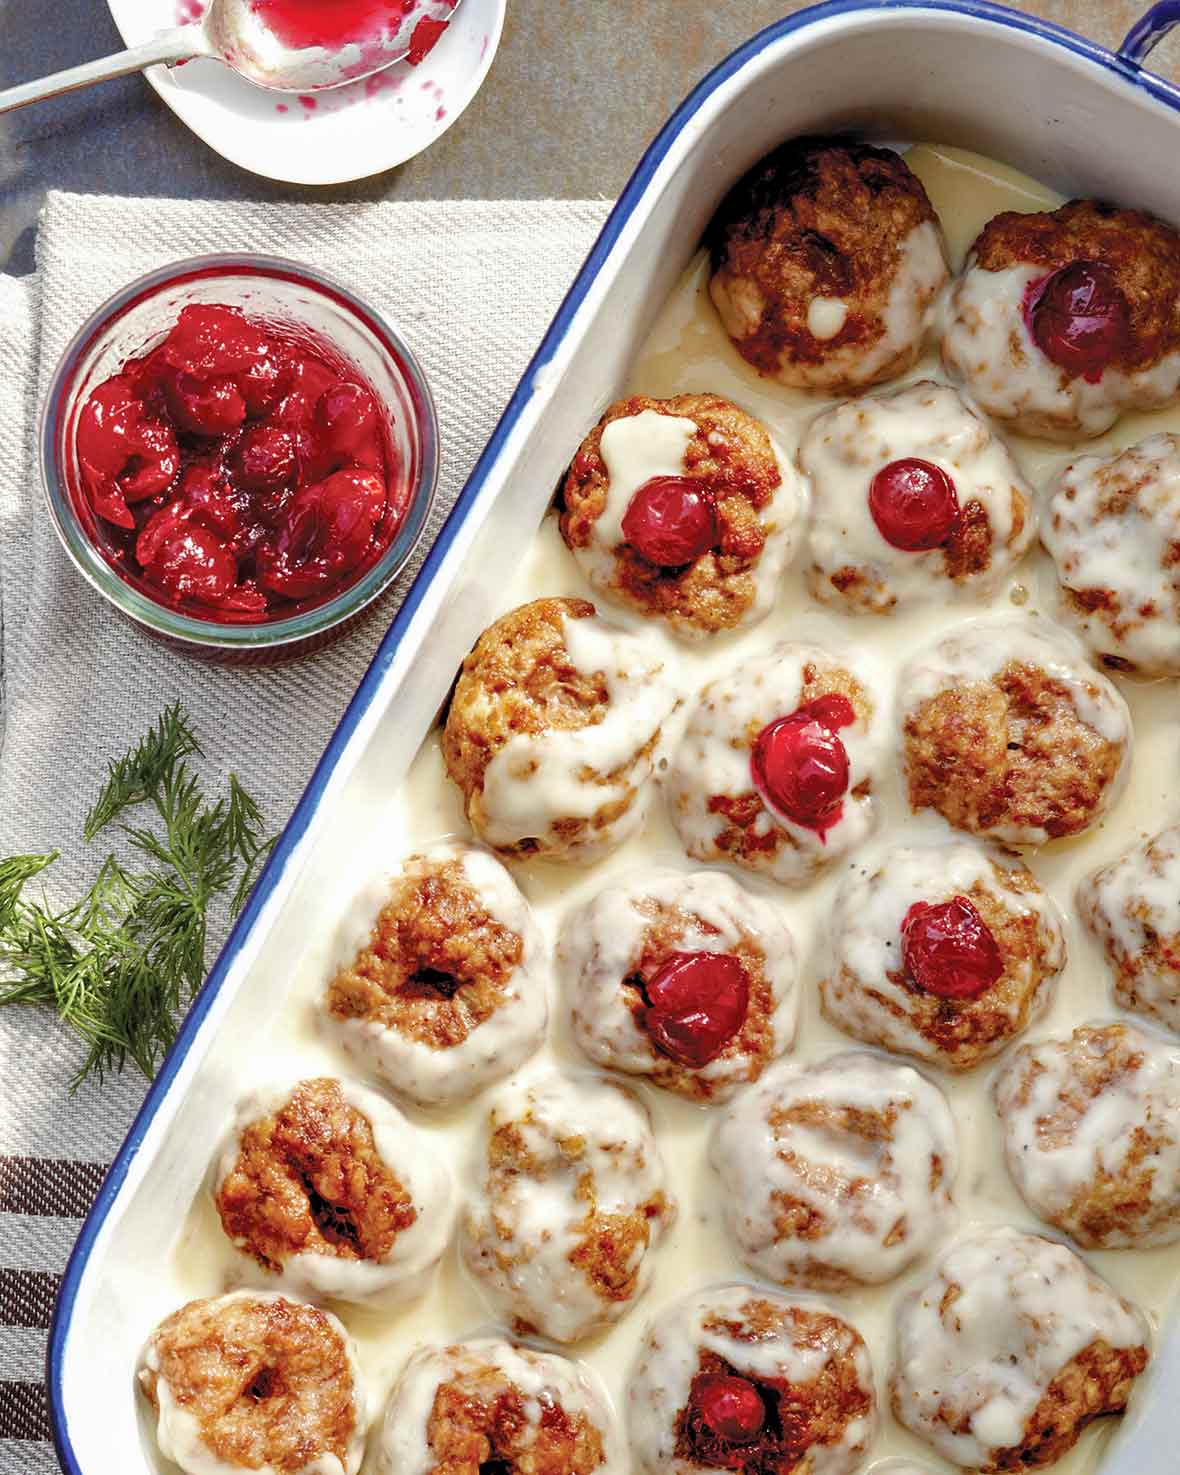 A white tray filled with Swedish meatballs--a combination of veal, pork, and beef--filled with cranberry sauce and topped with a white cream sauce